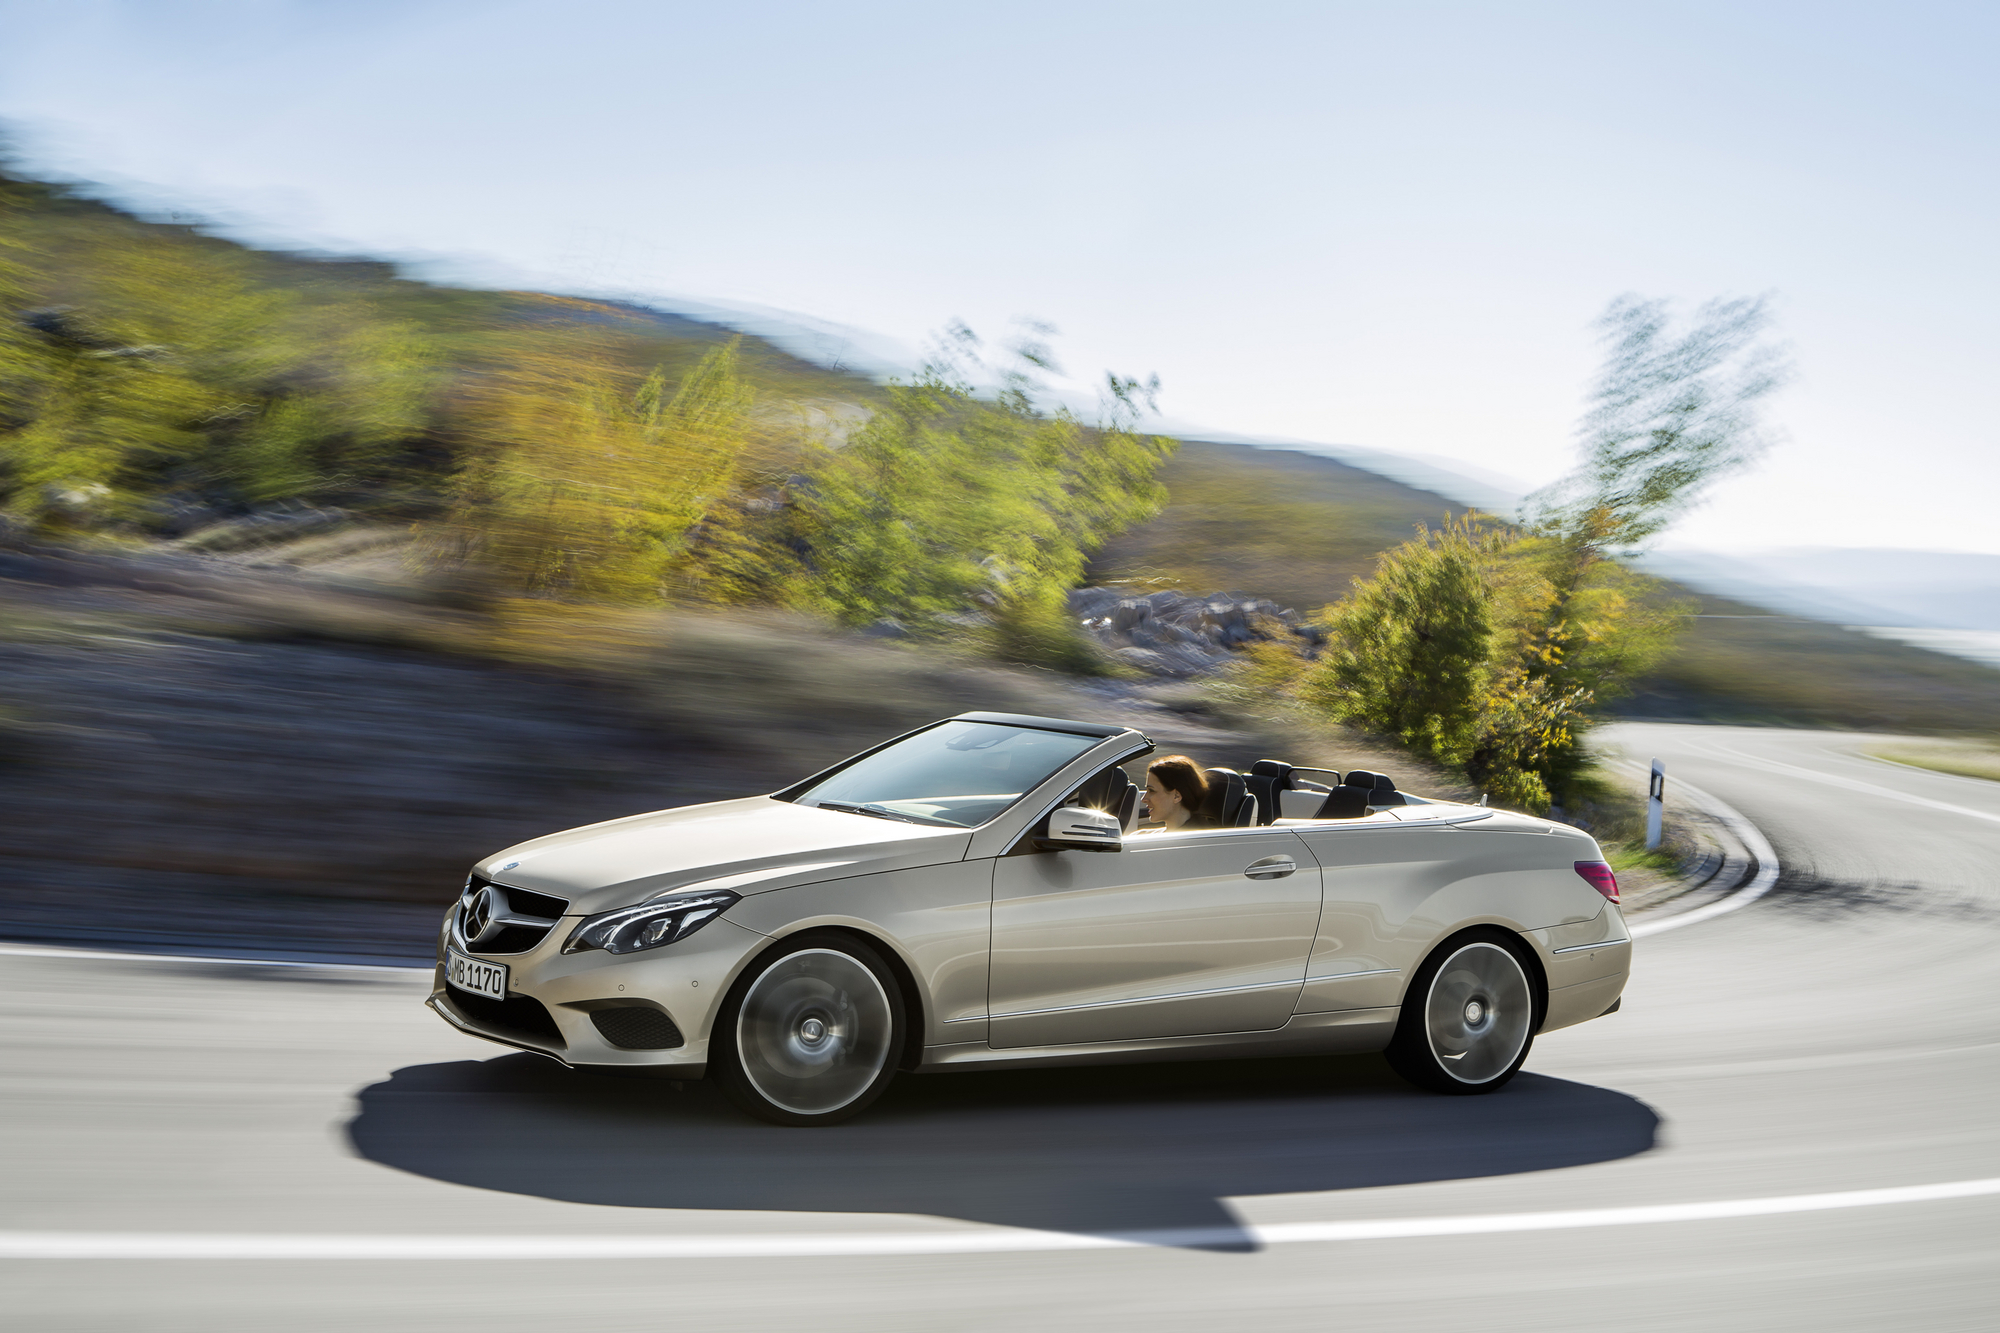 Slideshow on c63 amg convertible